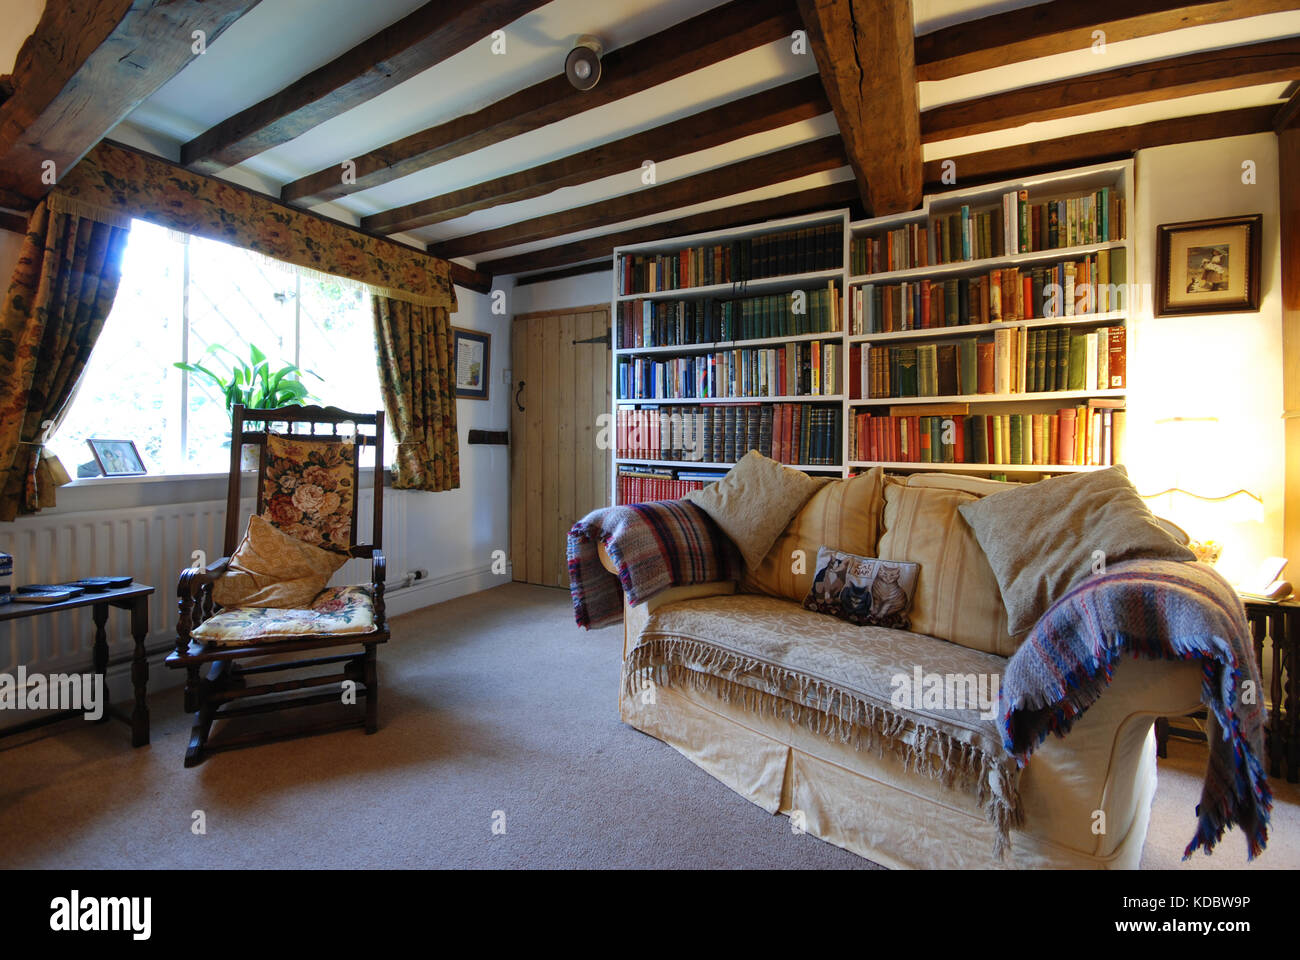 sitting room in old beamed ceiling Derbyshire cottage Stock Photo